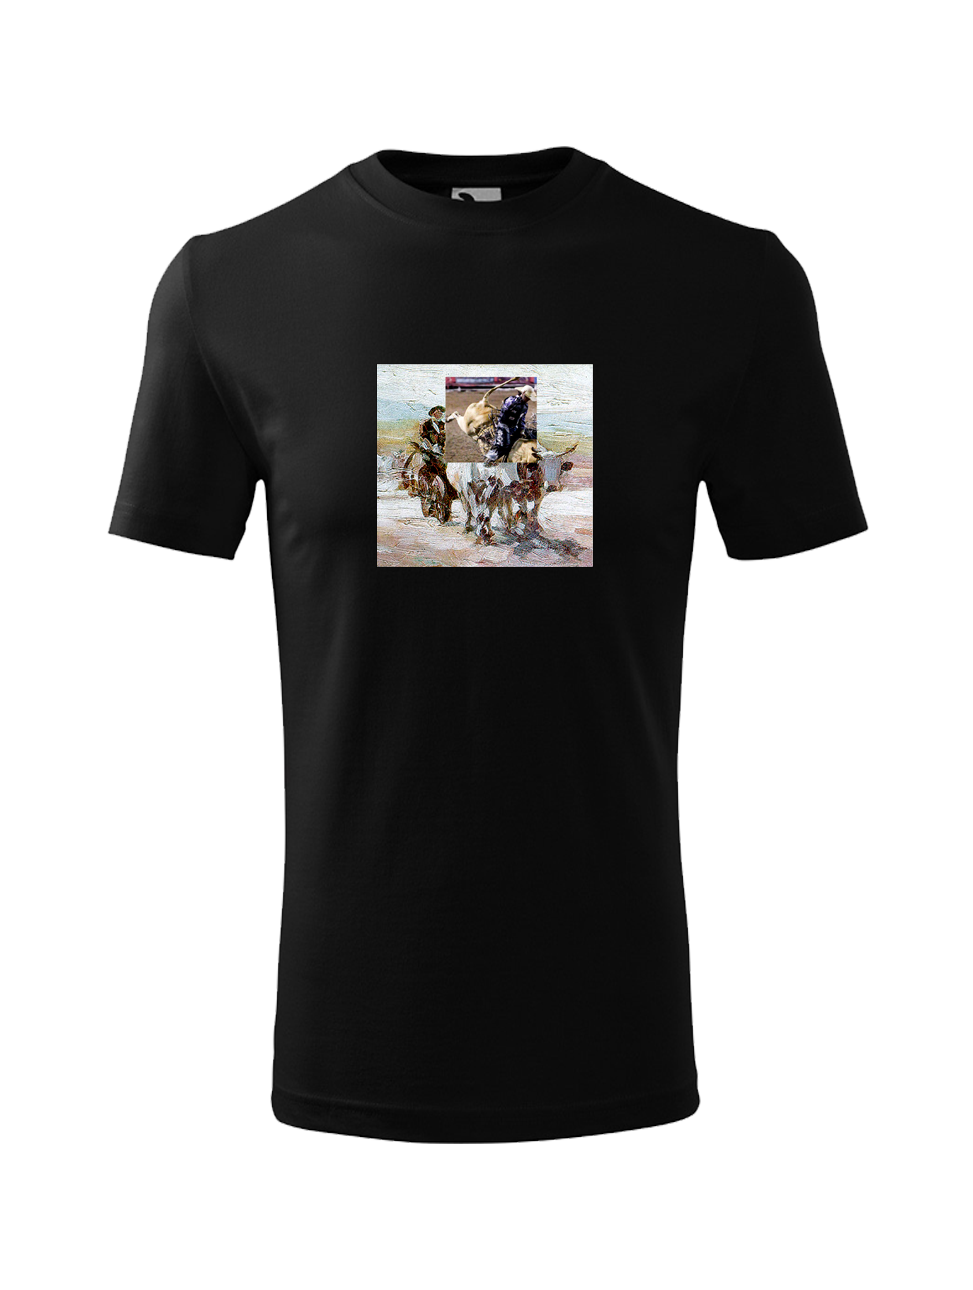 Tshirt - Rodeo OX Cart